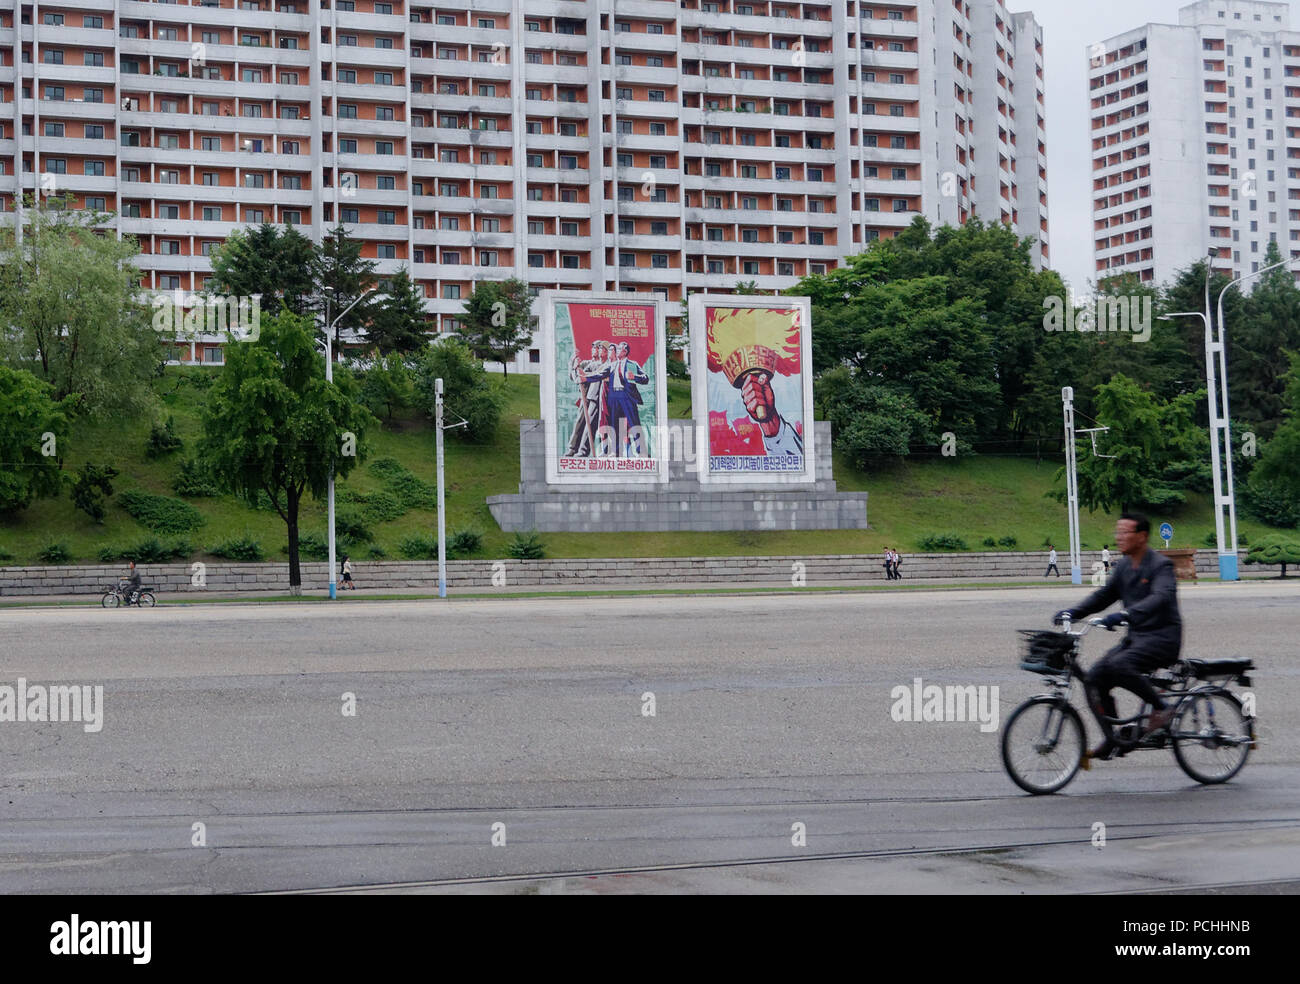 Cyclist passes the inspiration posters that abound in Pyongyang streets across an empty road, North Korea - Stock Image